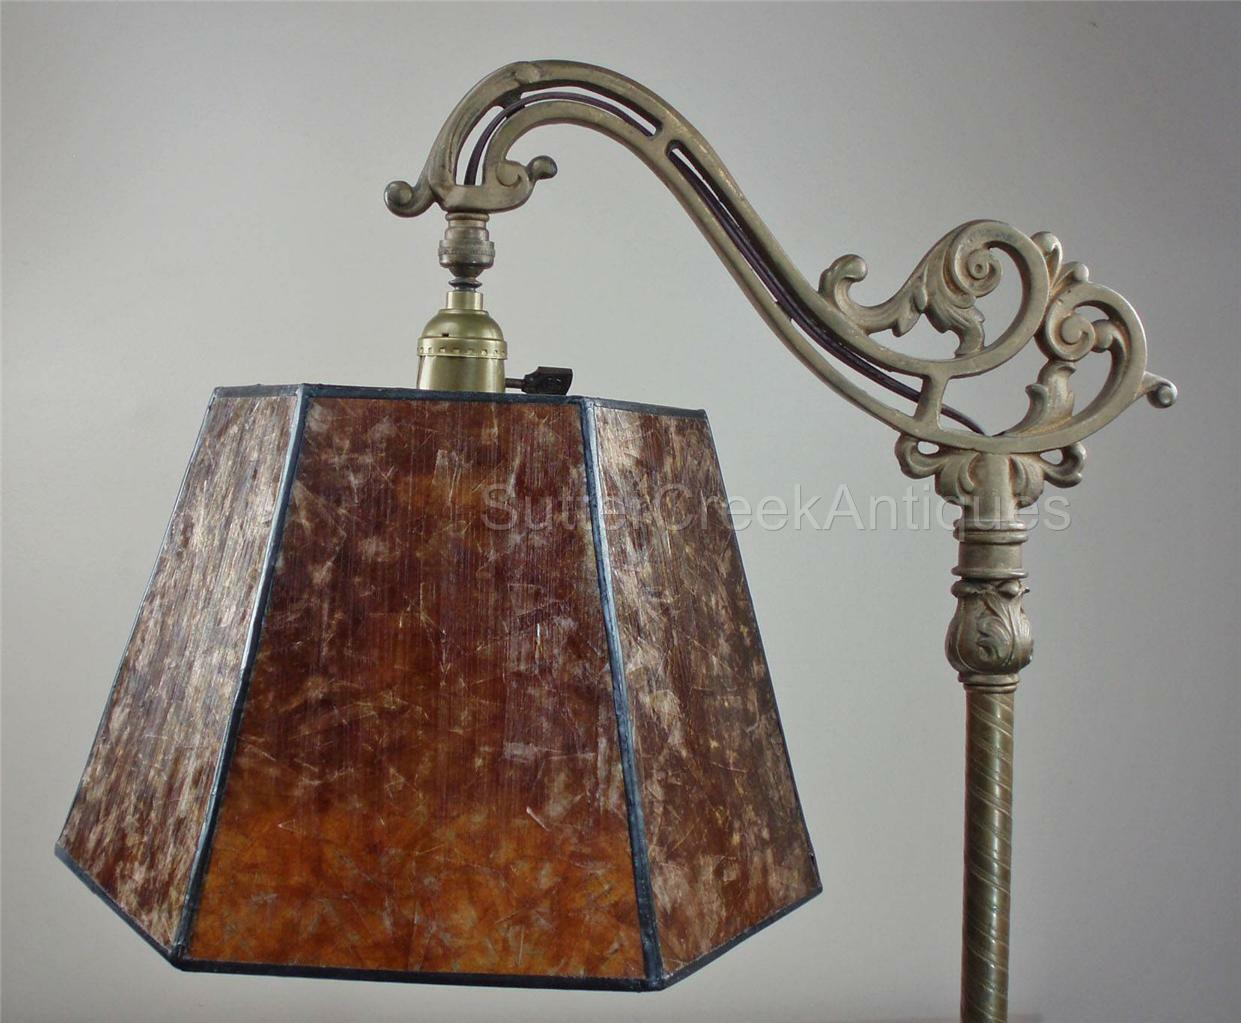 Mission arts crafts mica bridge floor lamp shade amber tailor picture 1 of 9 aloadofball Image collections